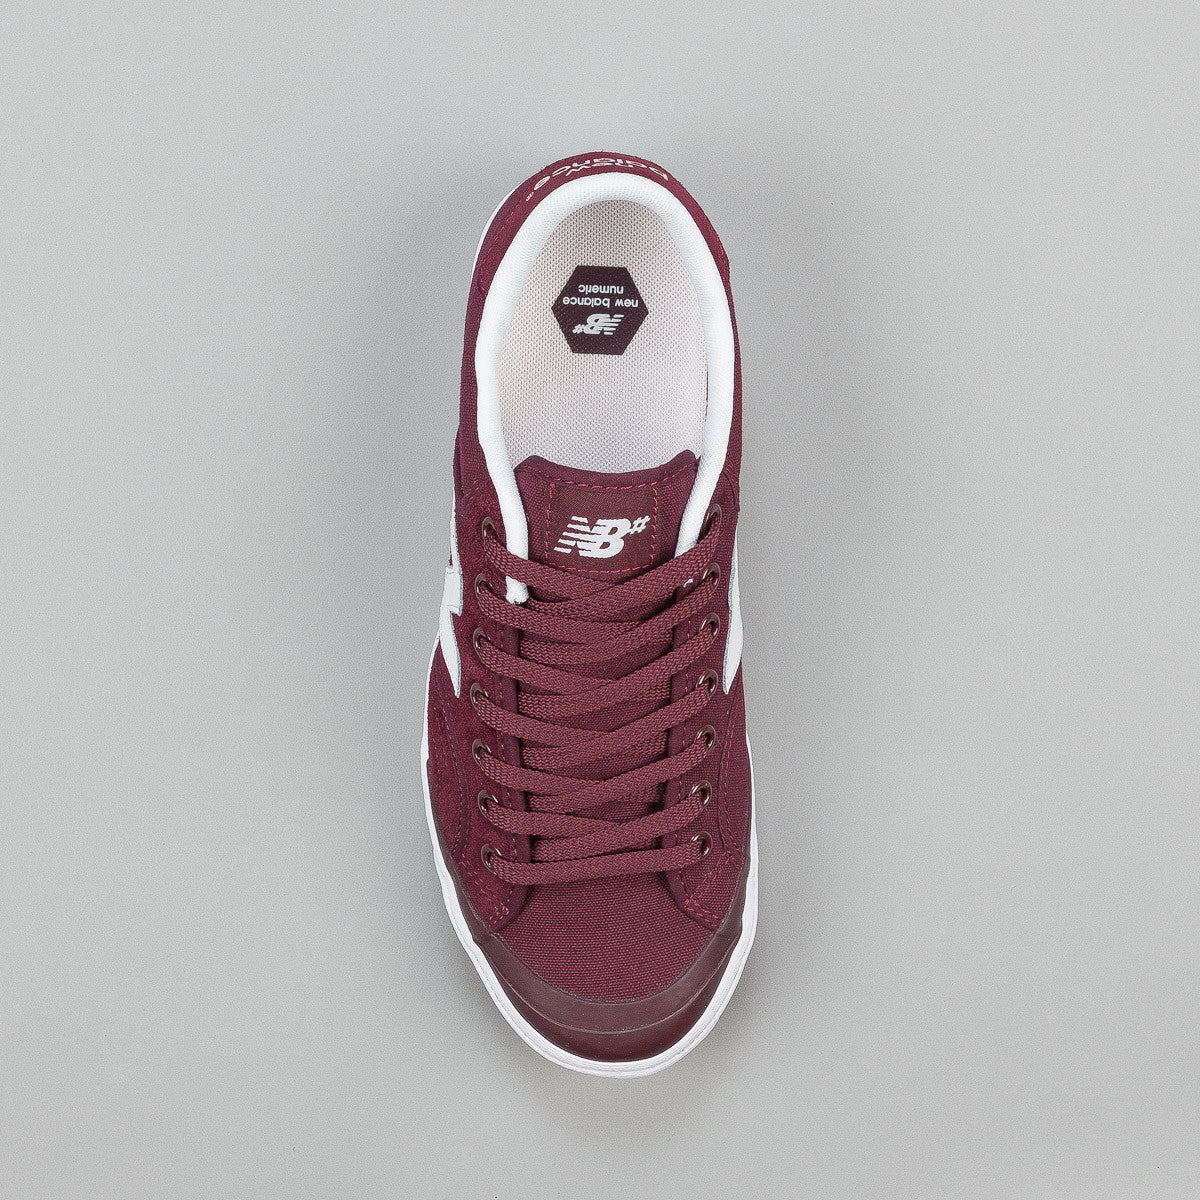 New Balance Numeric Pro Court 212 Shoes - Burgundy